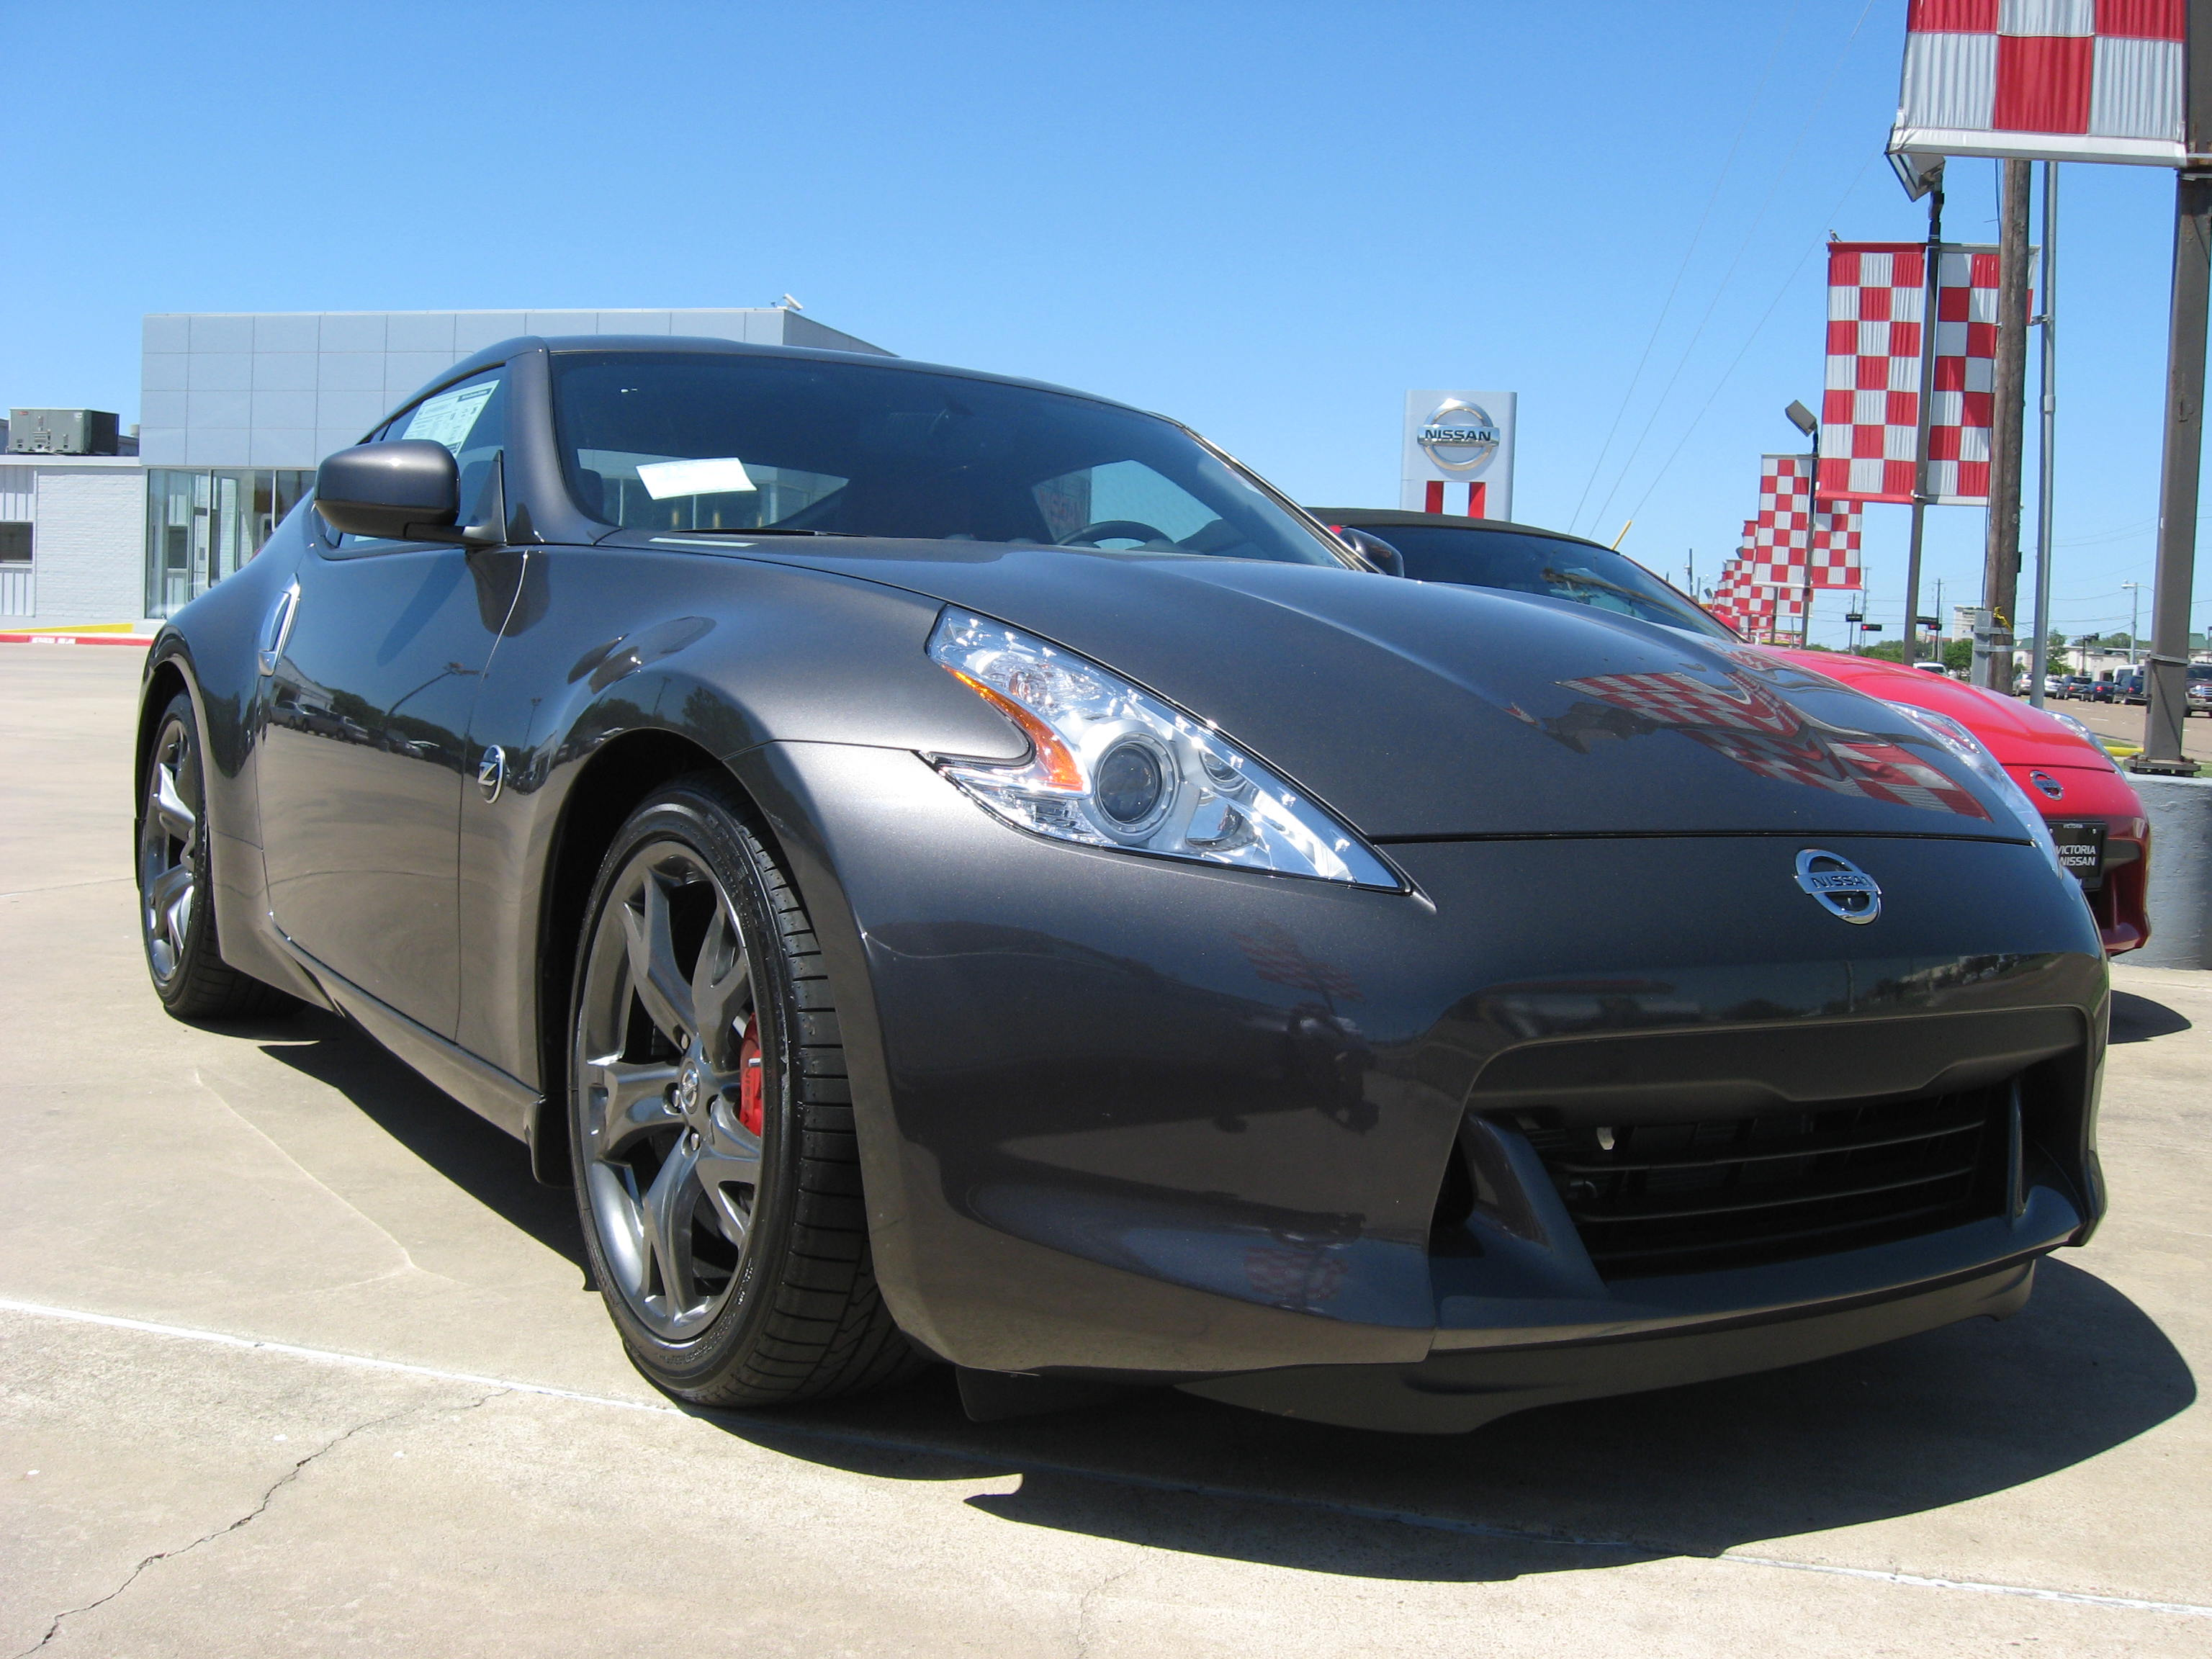 Celebrate Z Car History With A 40th Anniversary 370z 1 Of A 1000